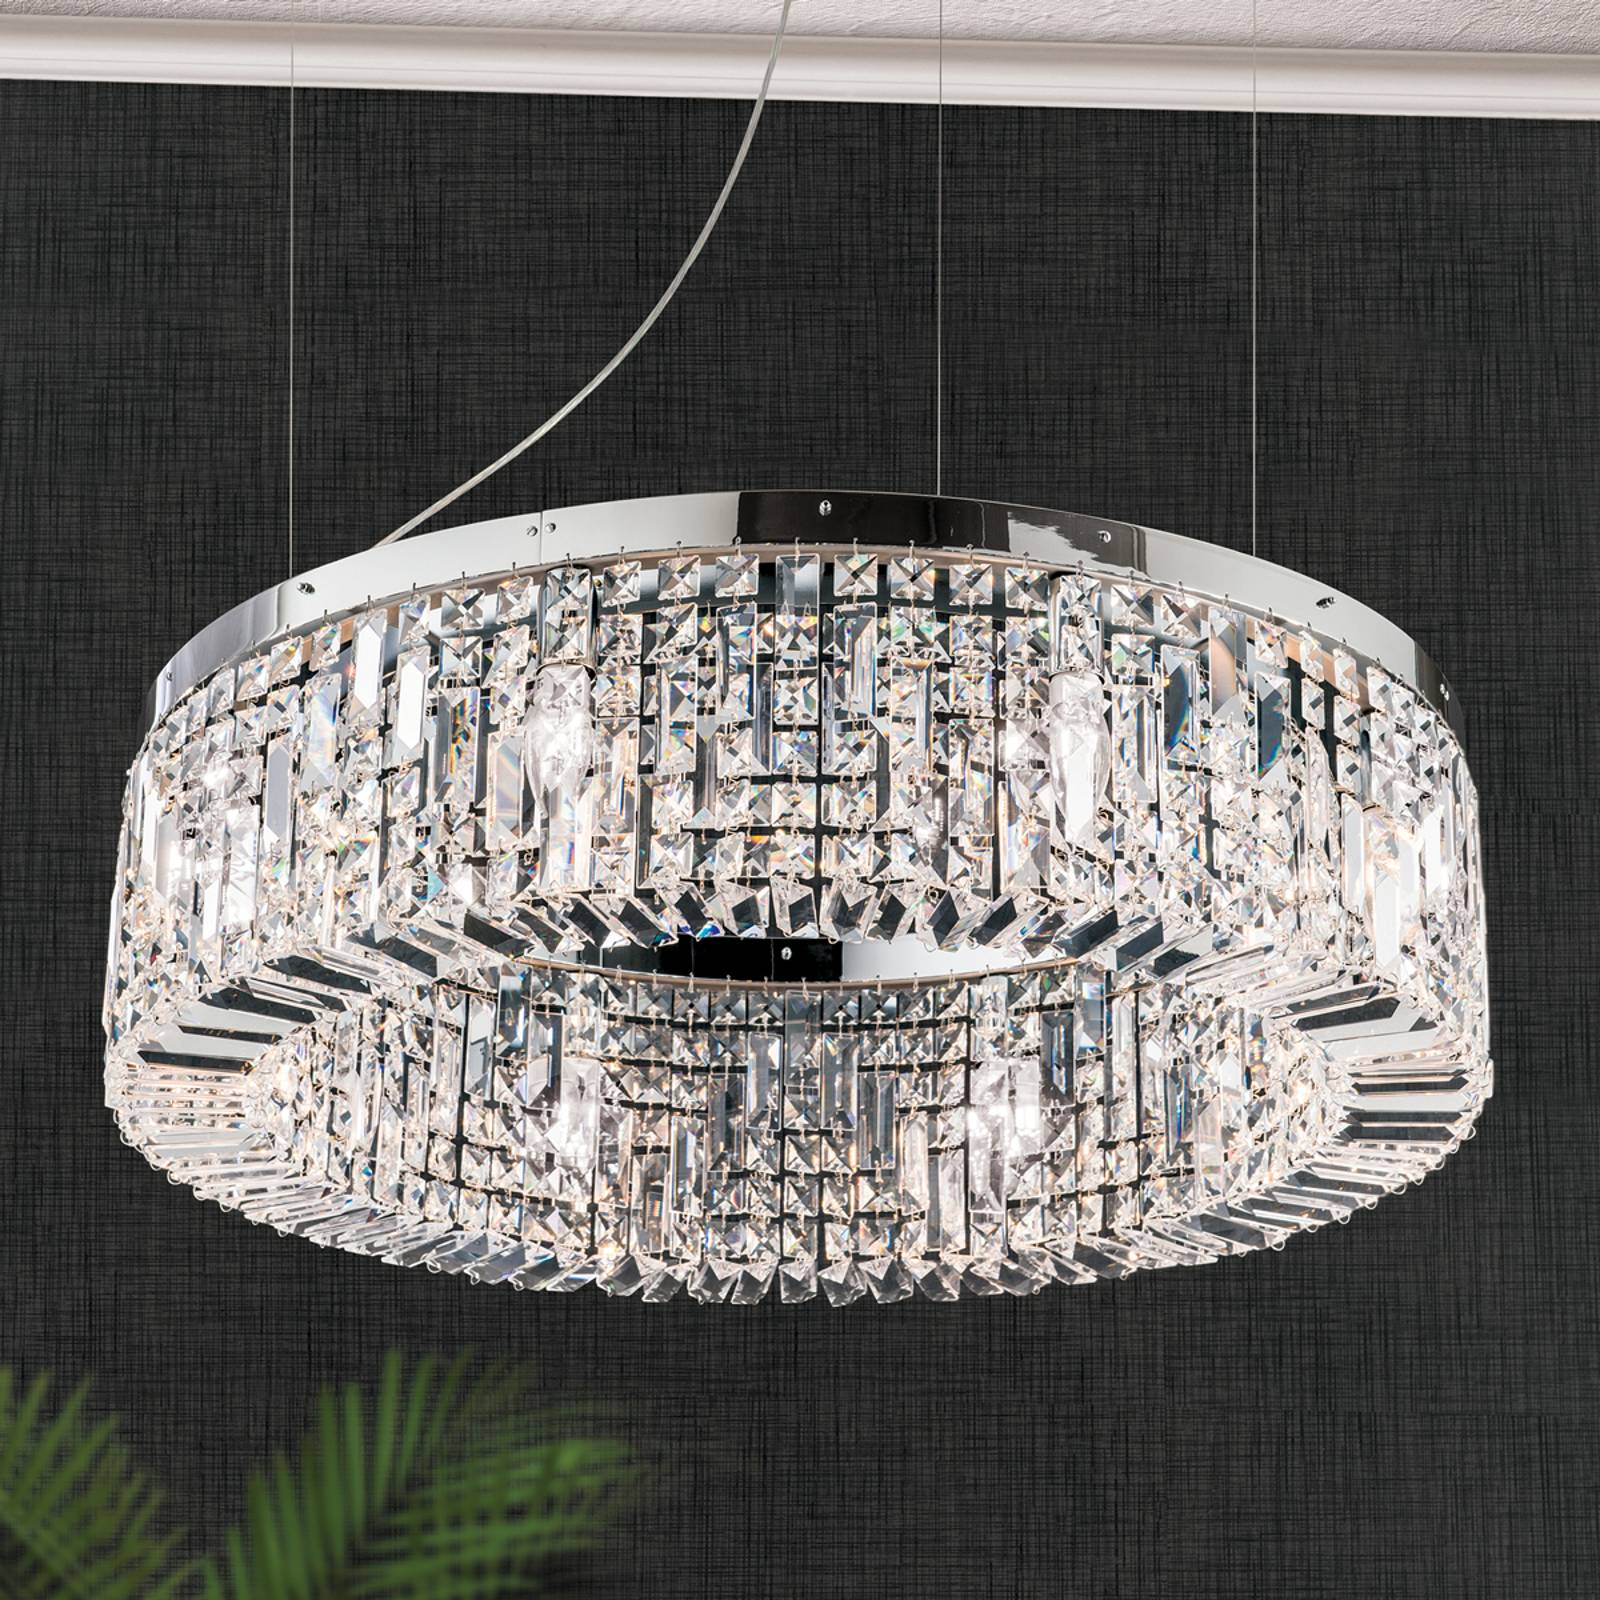 Sparkling crystalhanging lamp Ring 80 cm chrome from Orion